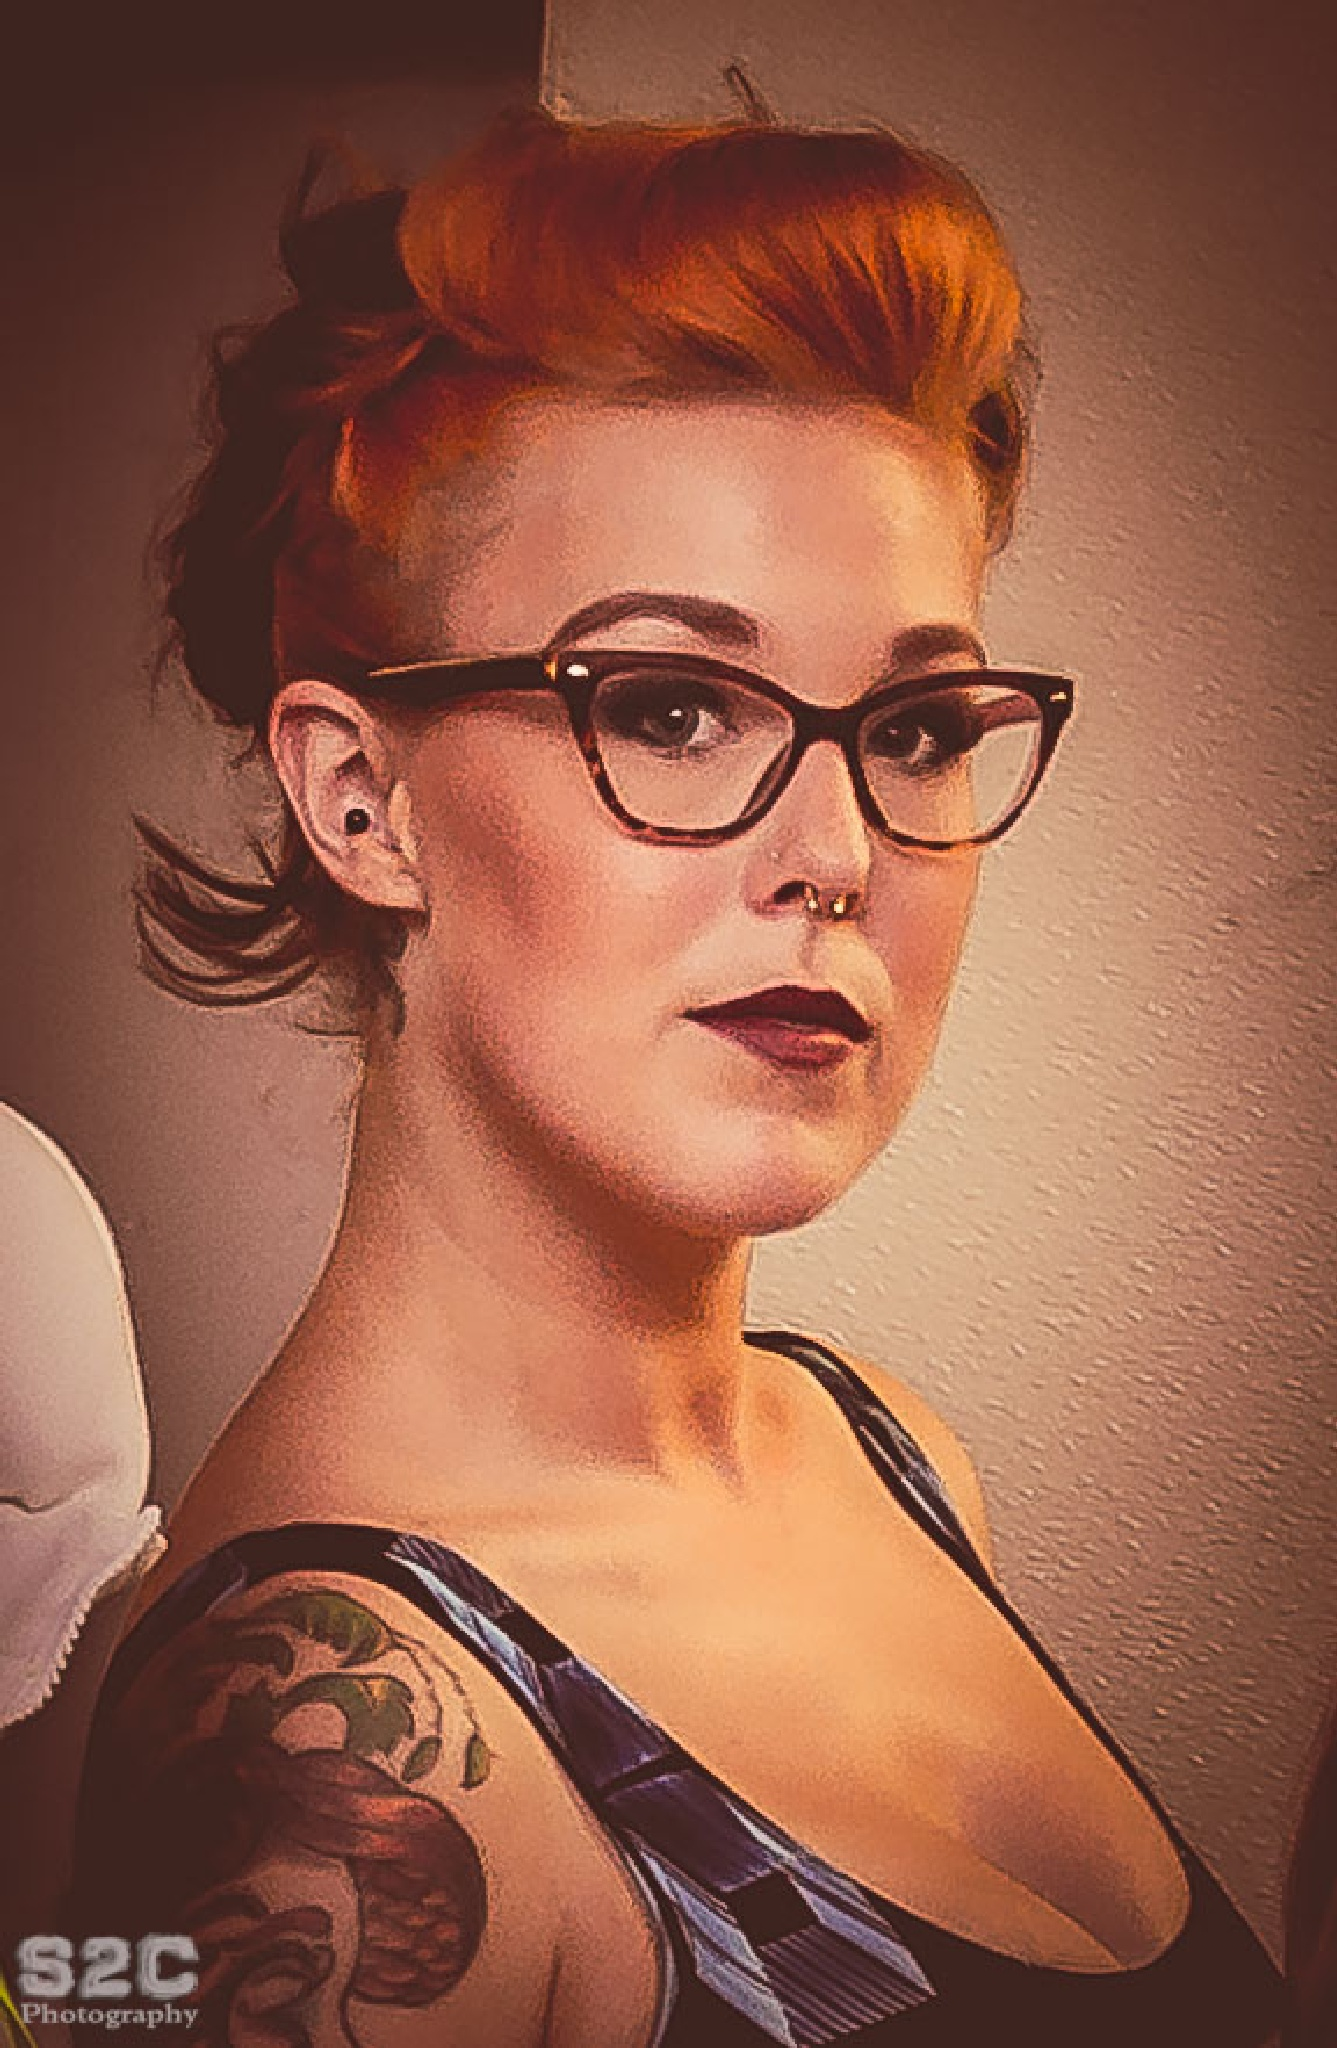 pin up girl look by Christopher A.